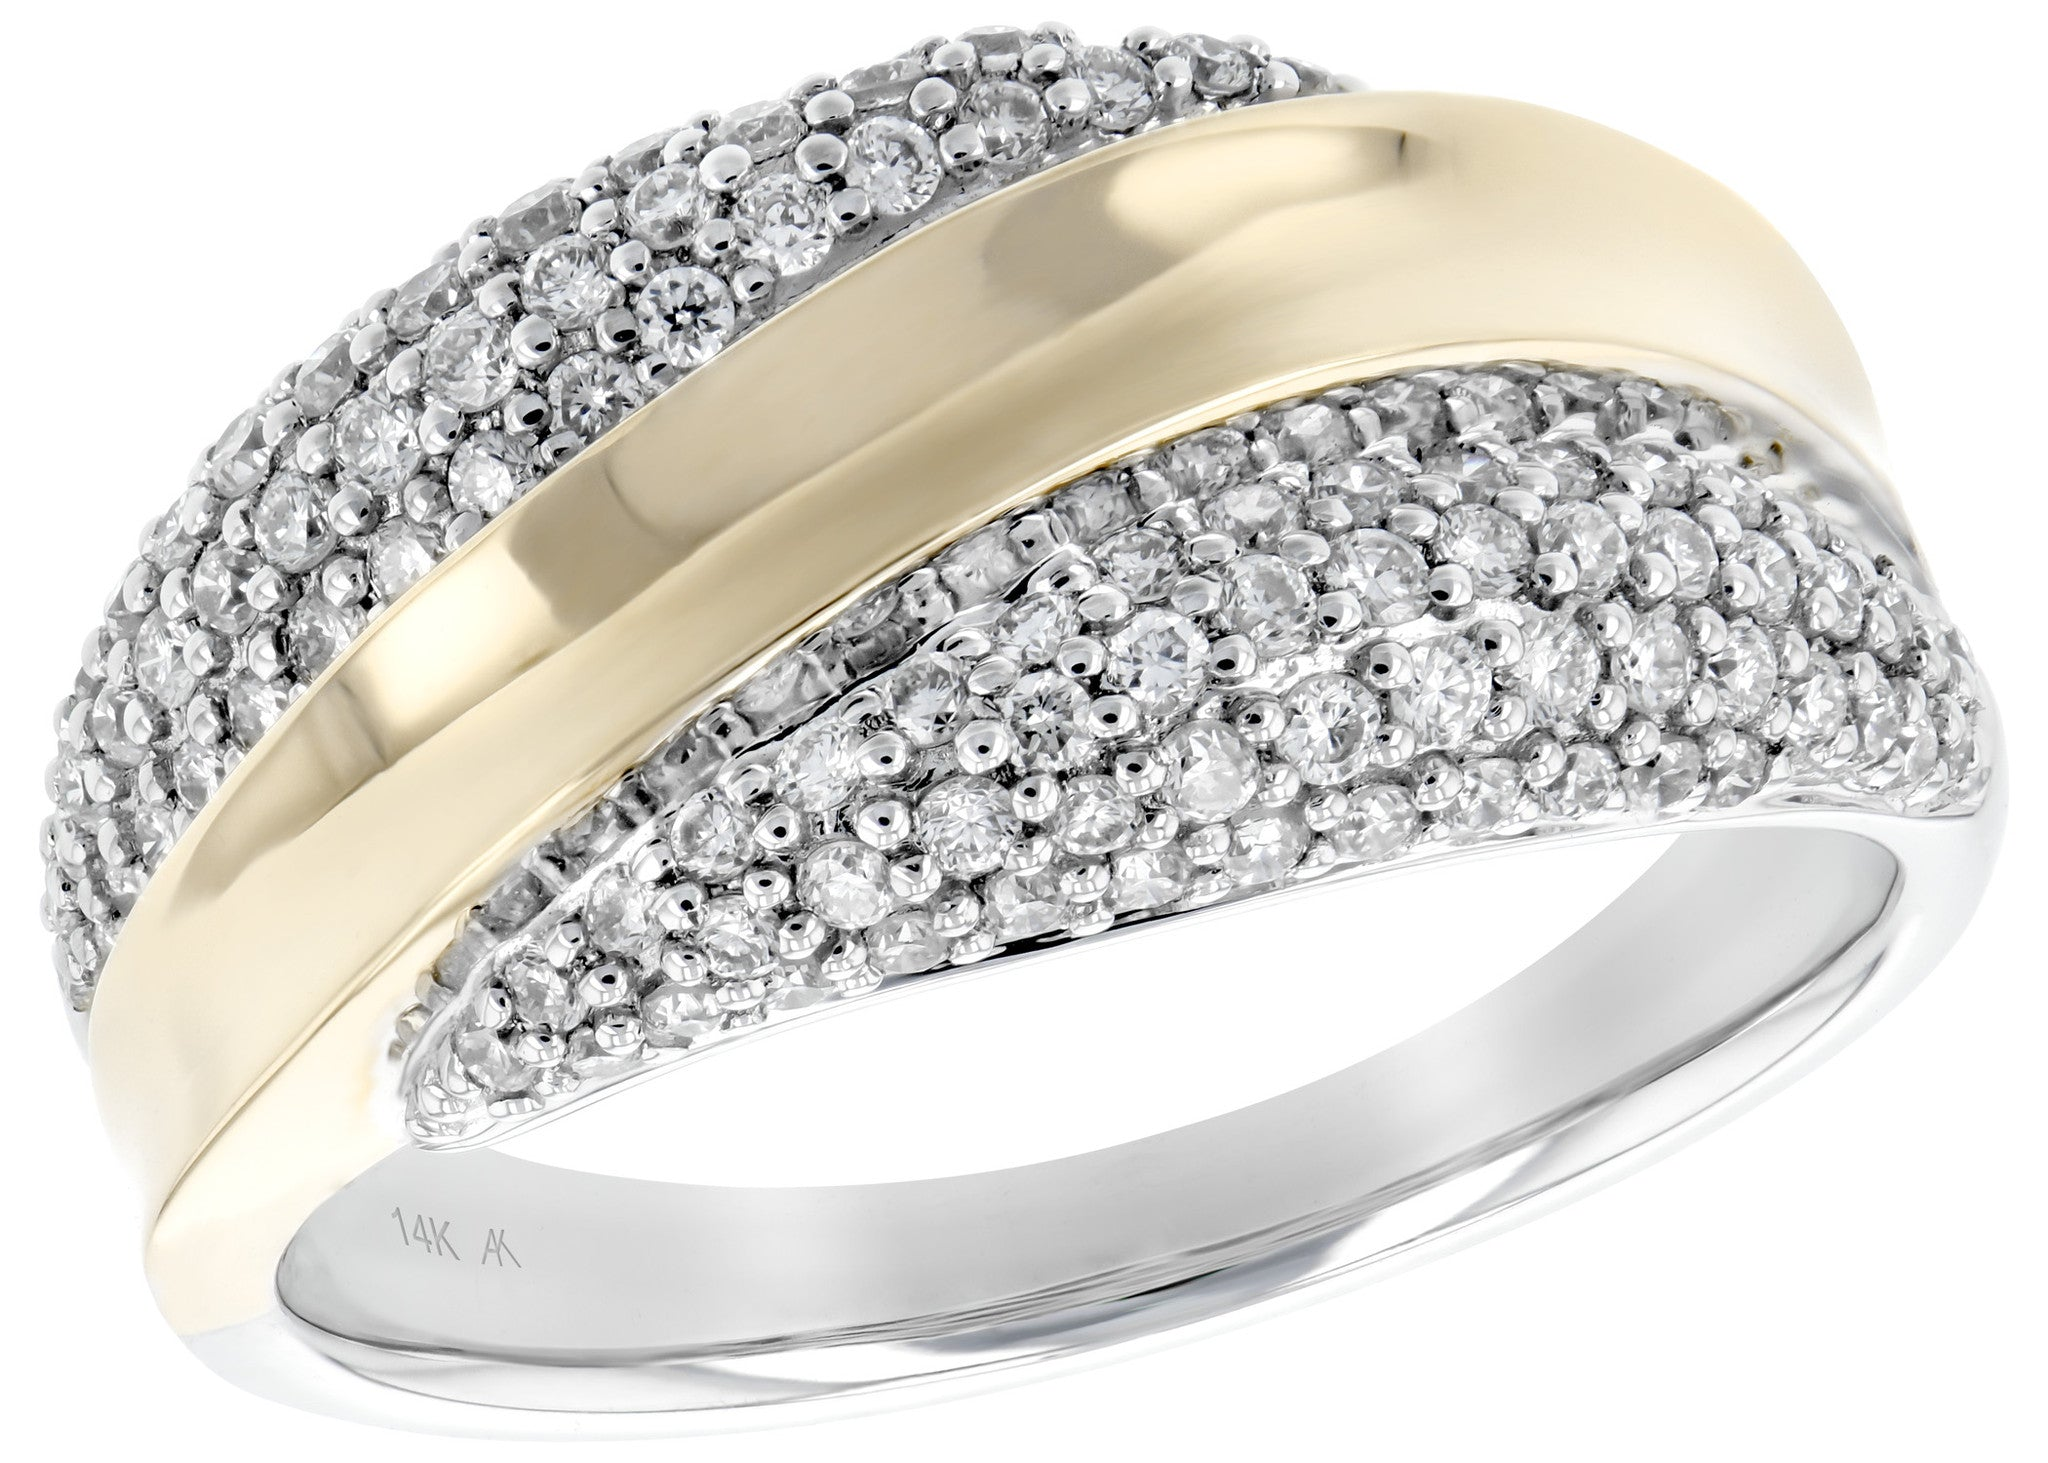 engagement pave in plat platinum set style marquise multi jewelry with kwiat ring halo bands diamond